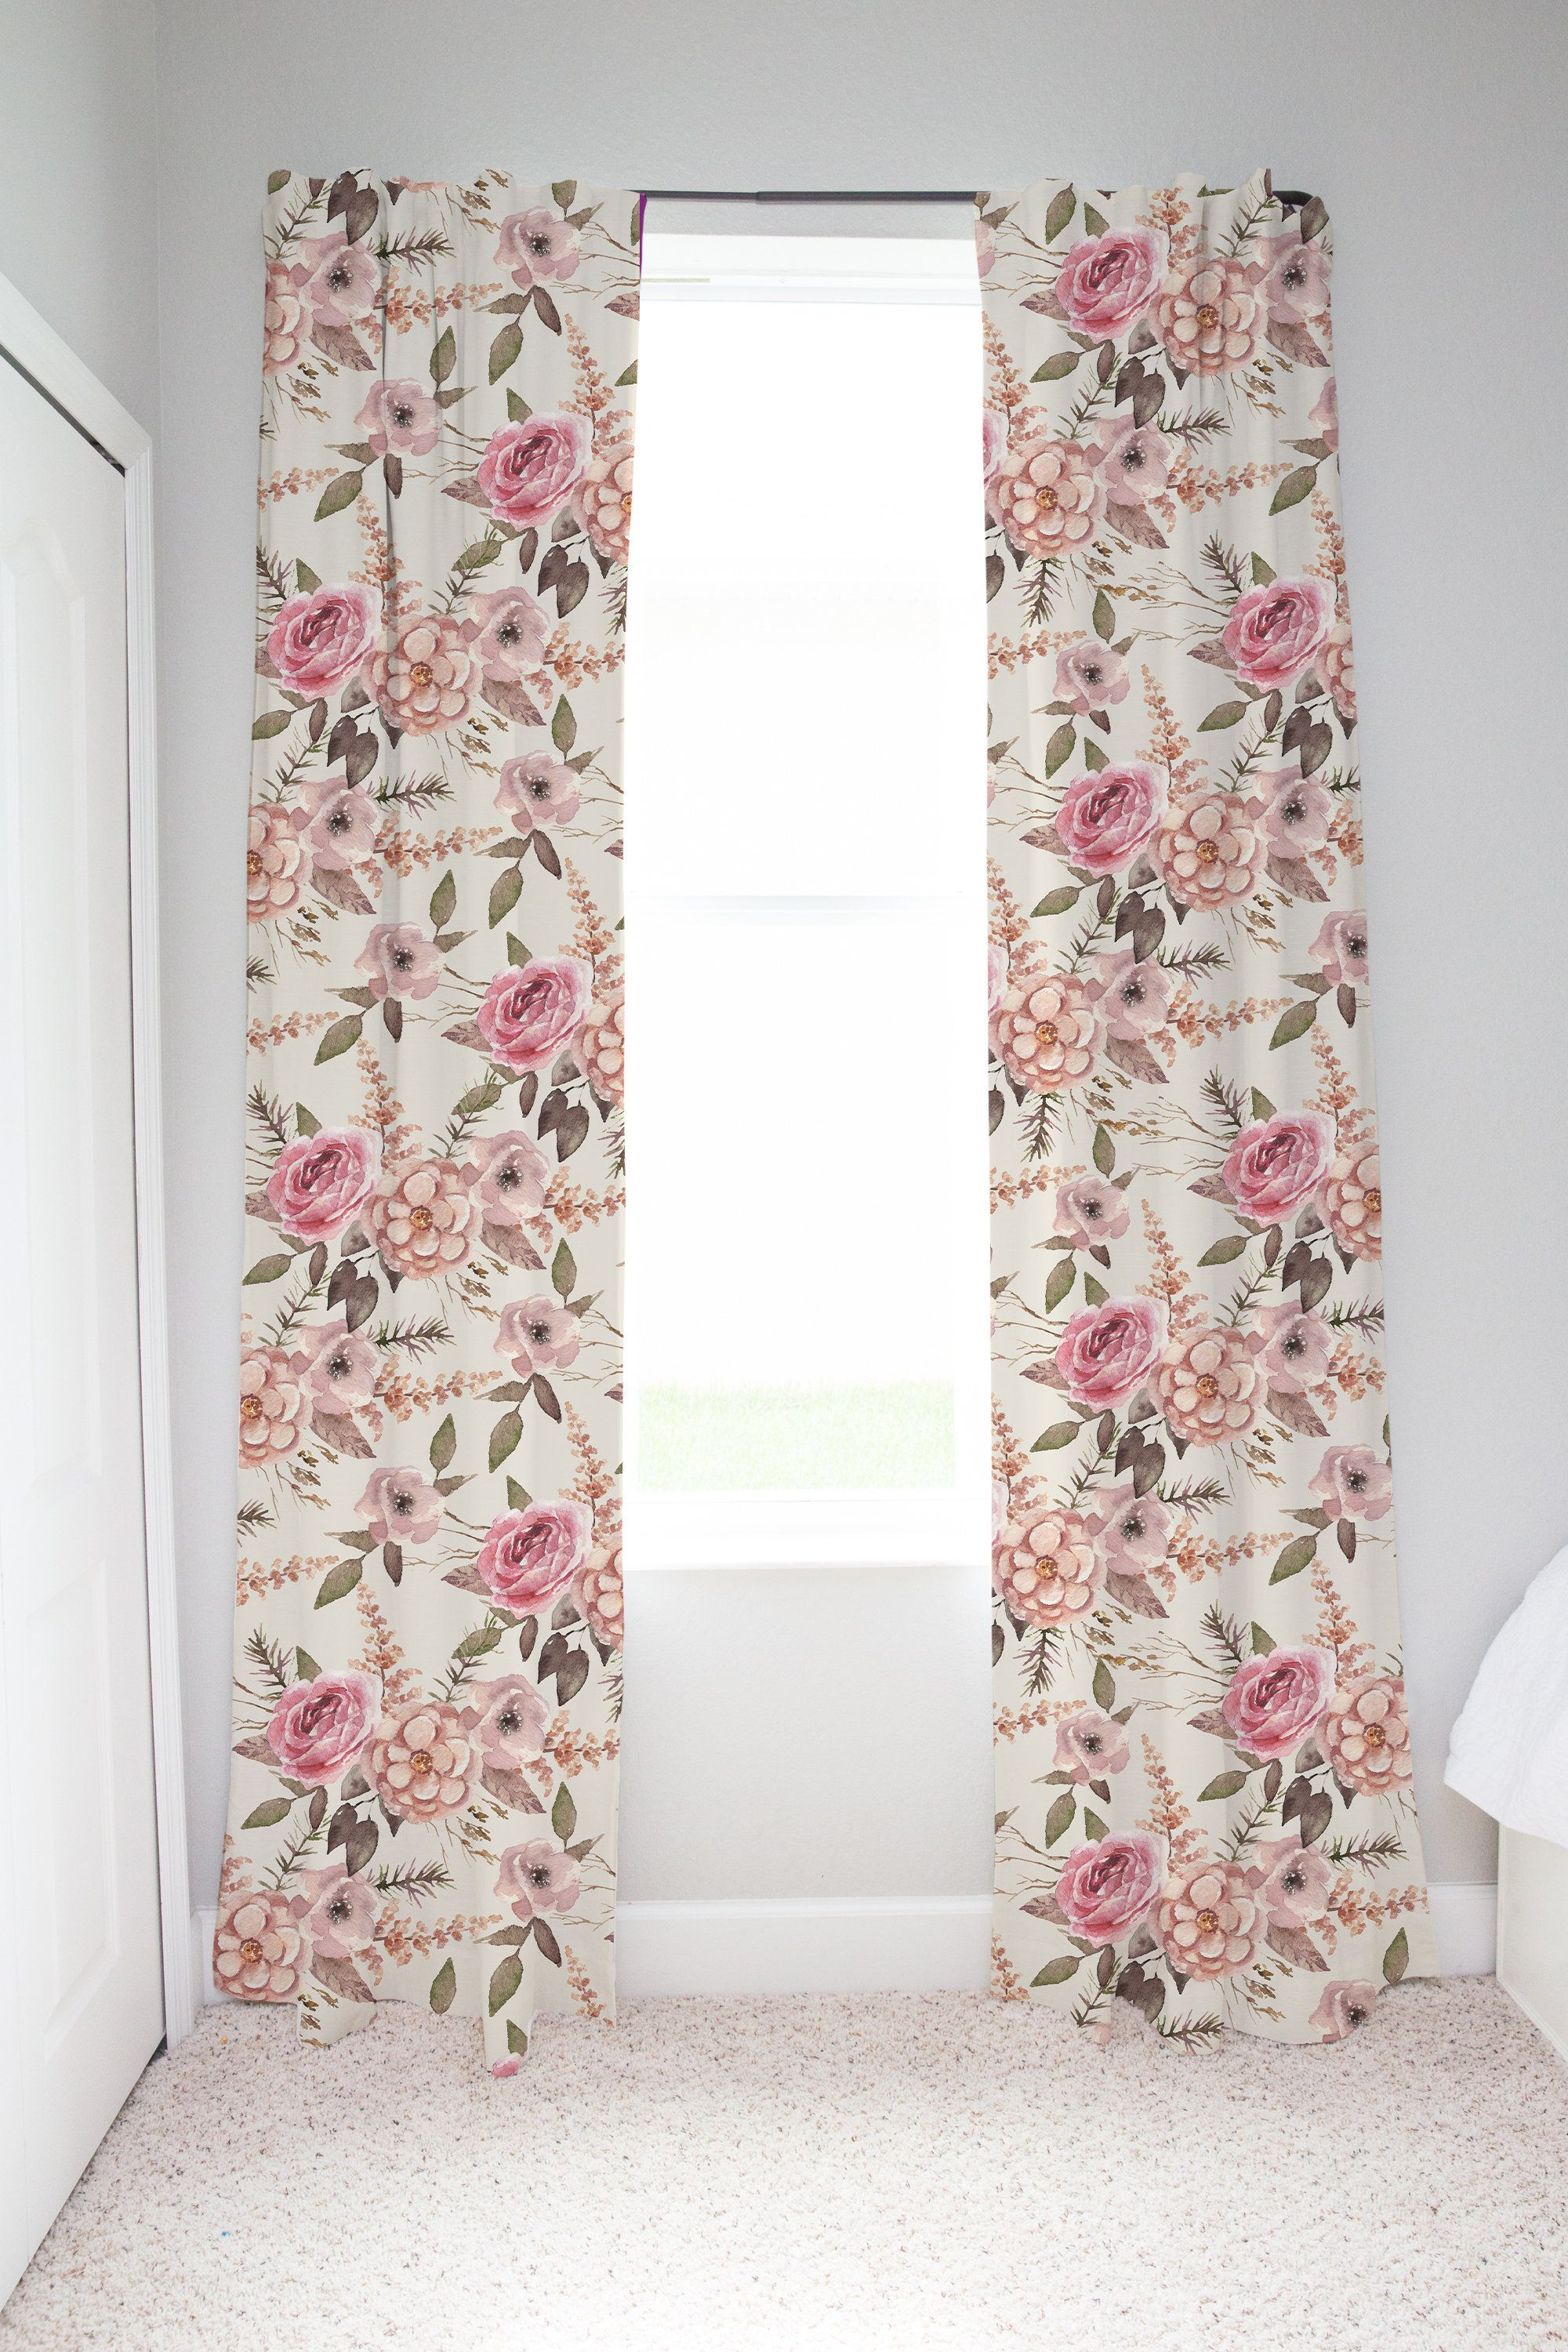 Rose Floral Curtains Floral Curtain Panels Girl Room Curtains